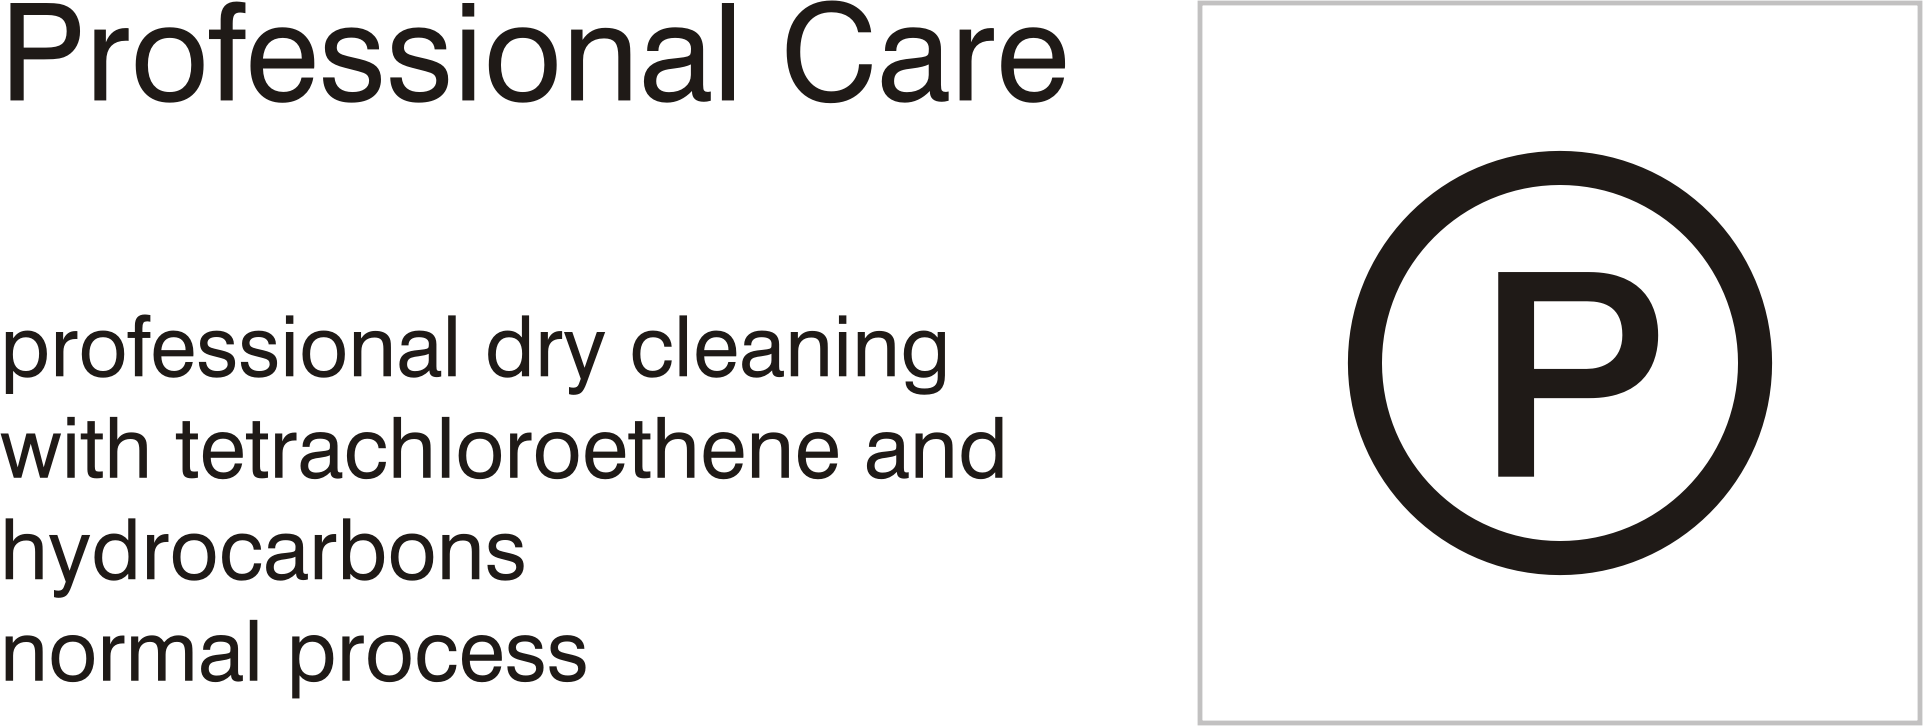 Care symbols, professional care: dry clean with tetrachloroethene and hydrocarbons - normal process by Vanja